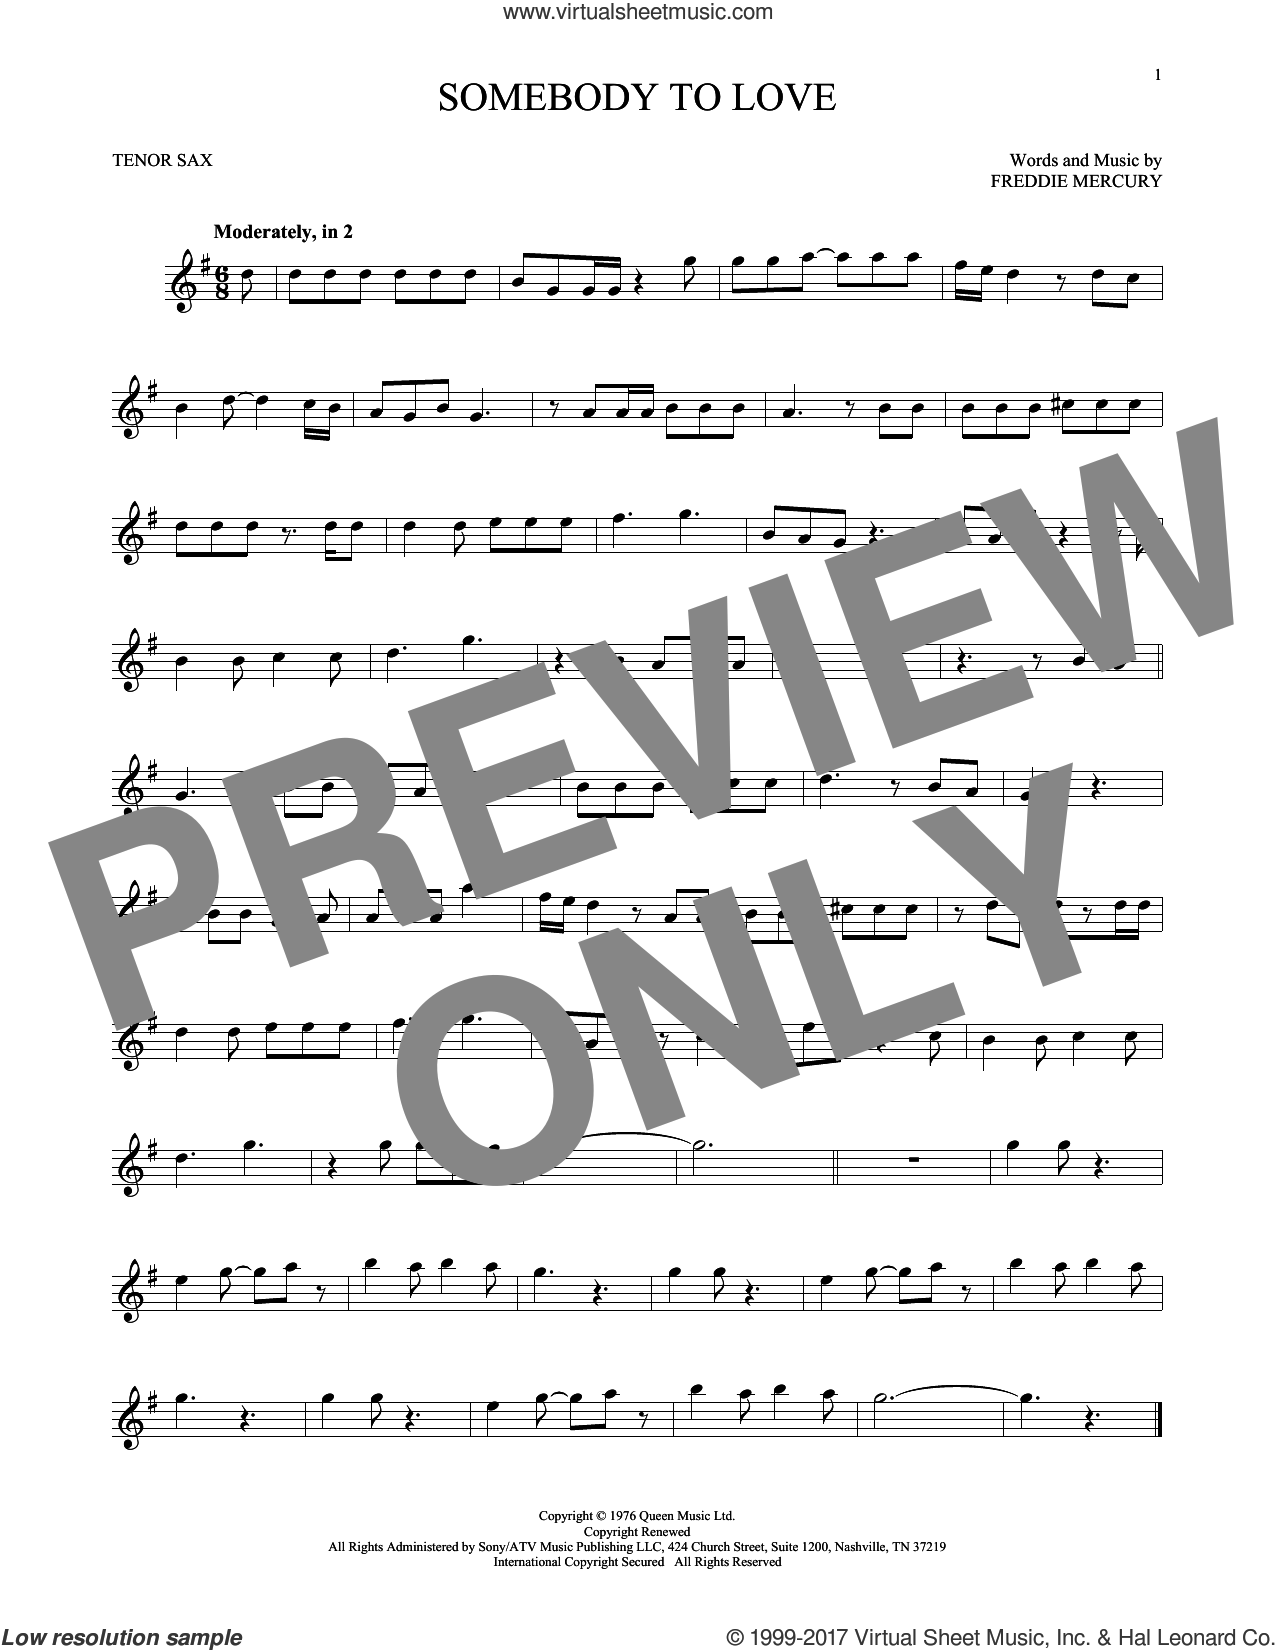 Somebody To Love sheet music for tenor saxophone solo ( Sax) by Queen and Freddie Mercury, intermediate tenor saxophone ( Sax). Score Image Preview.